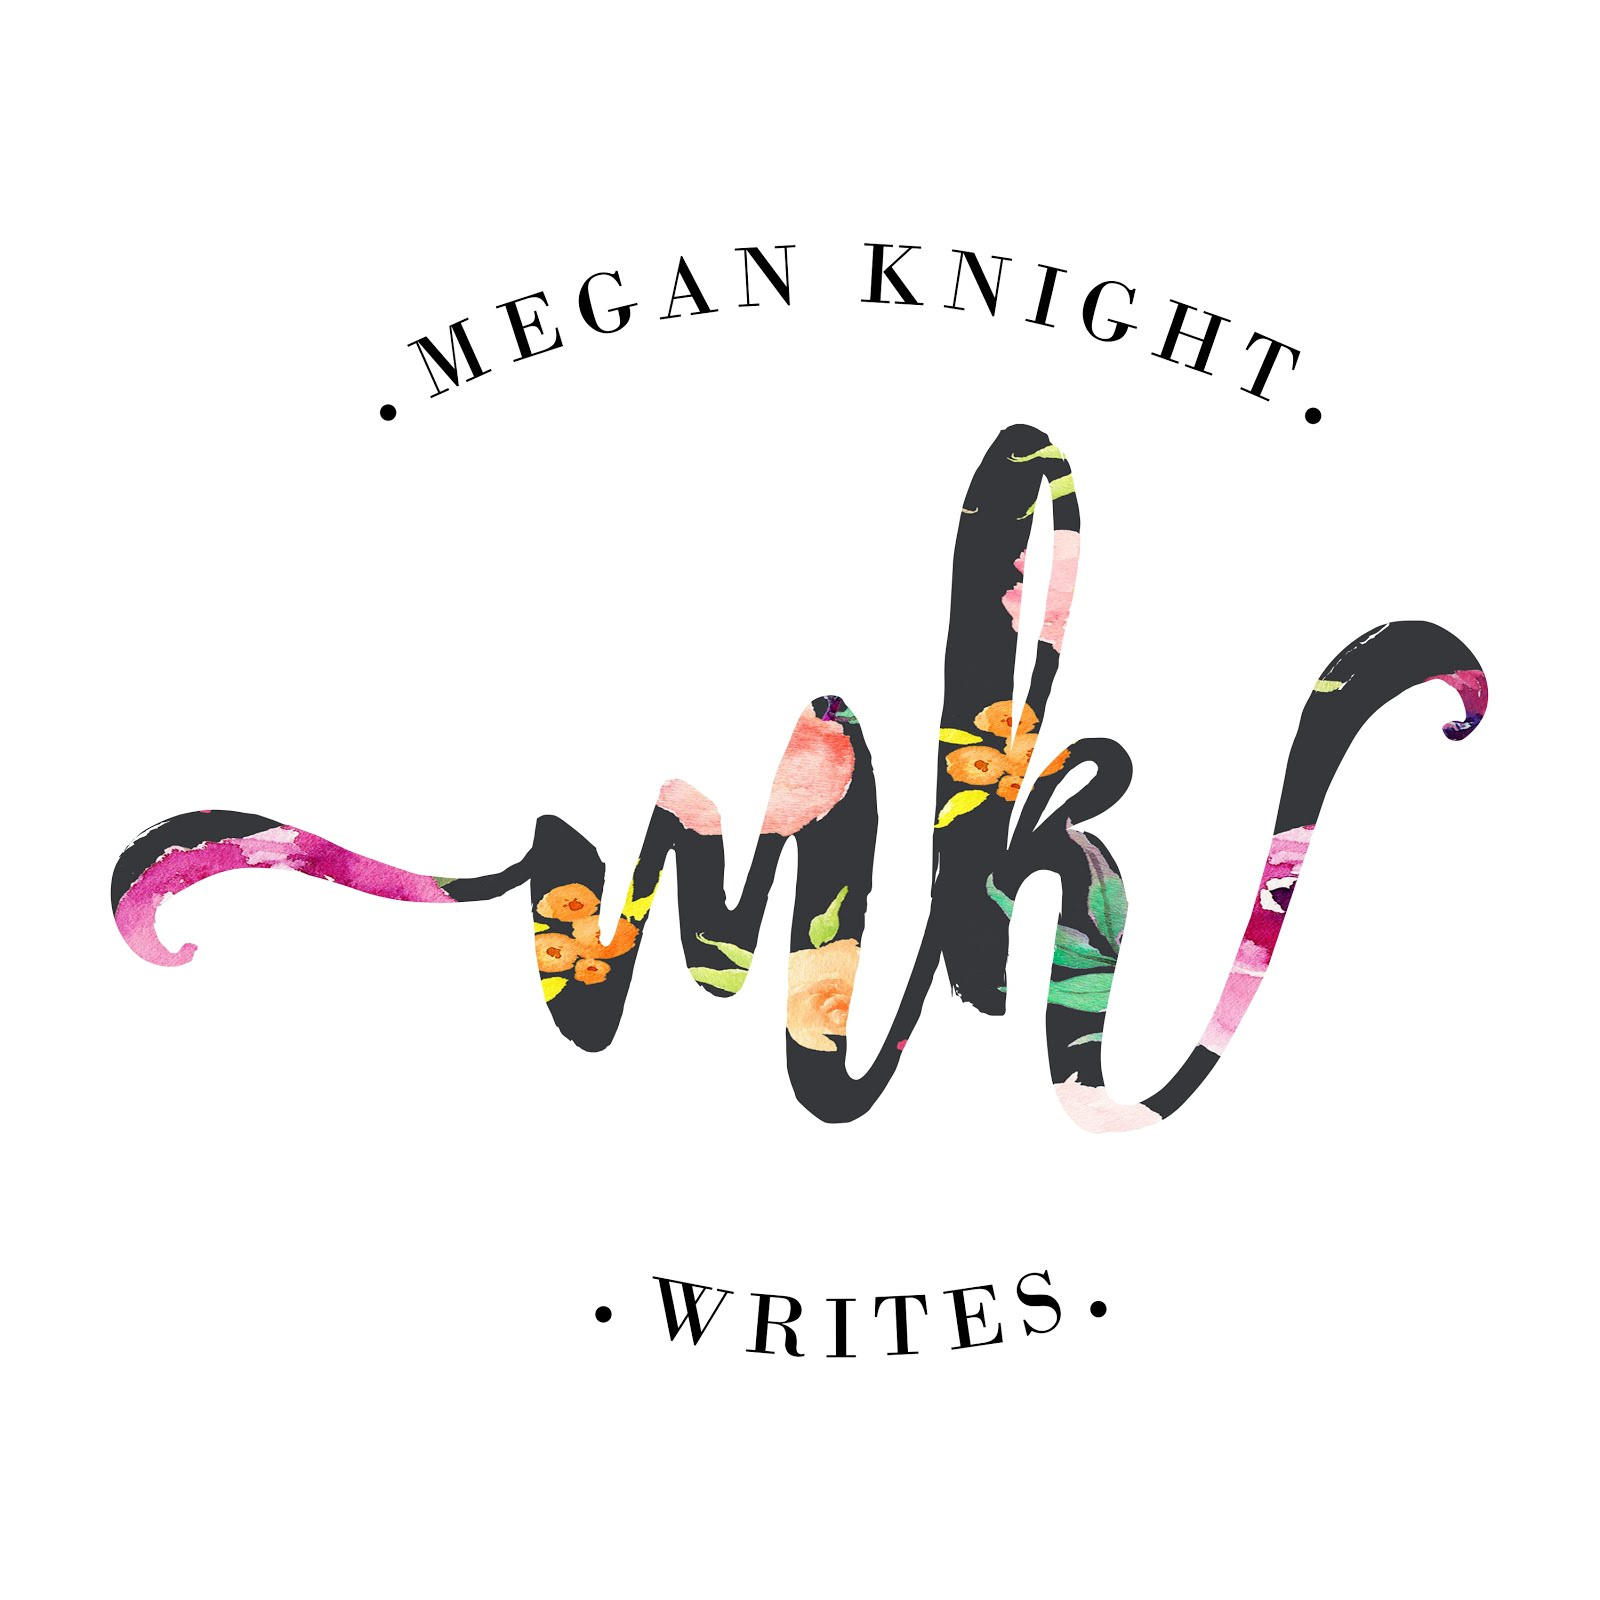 Megan Knight Writes